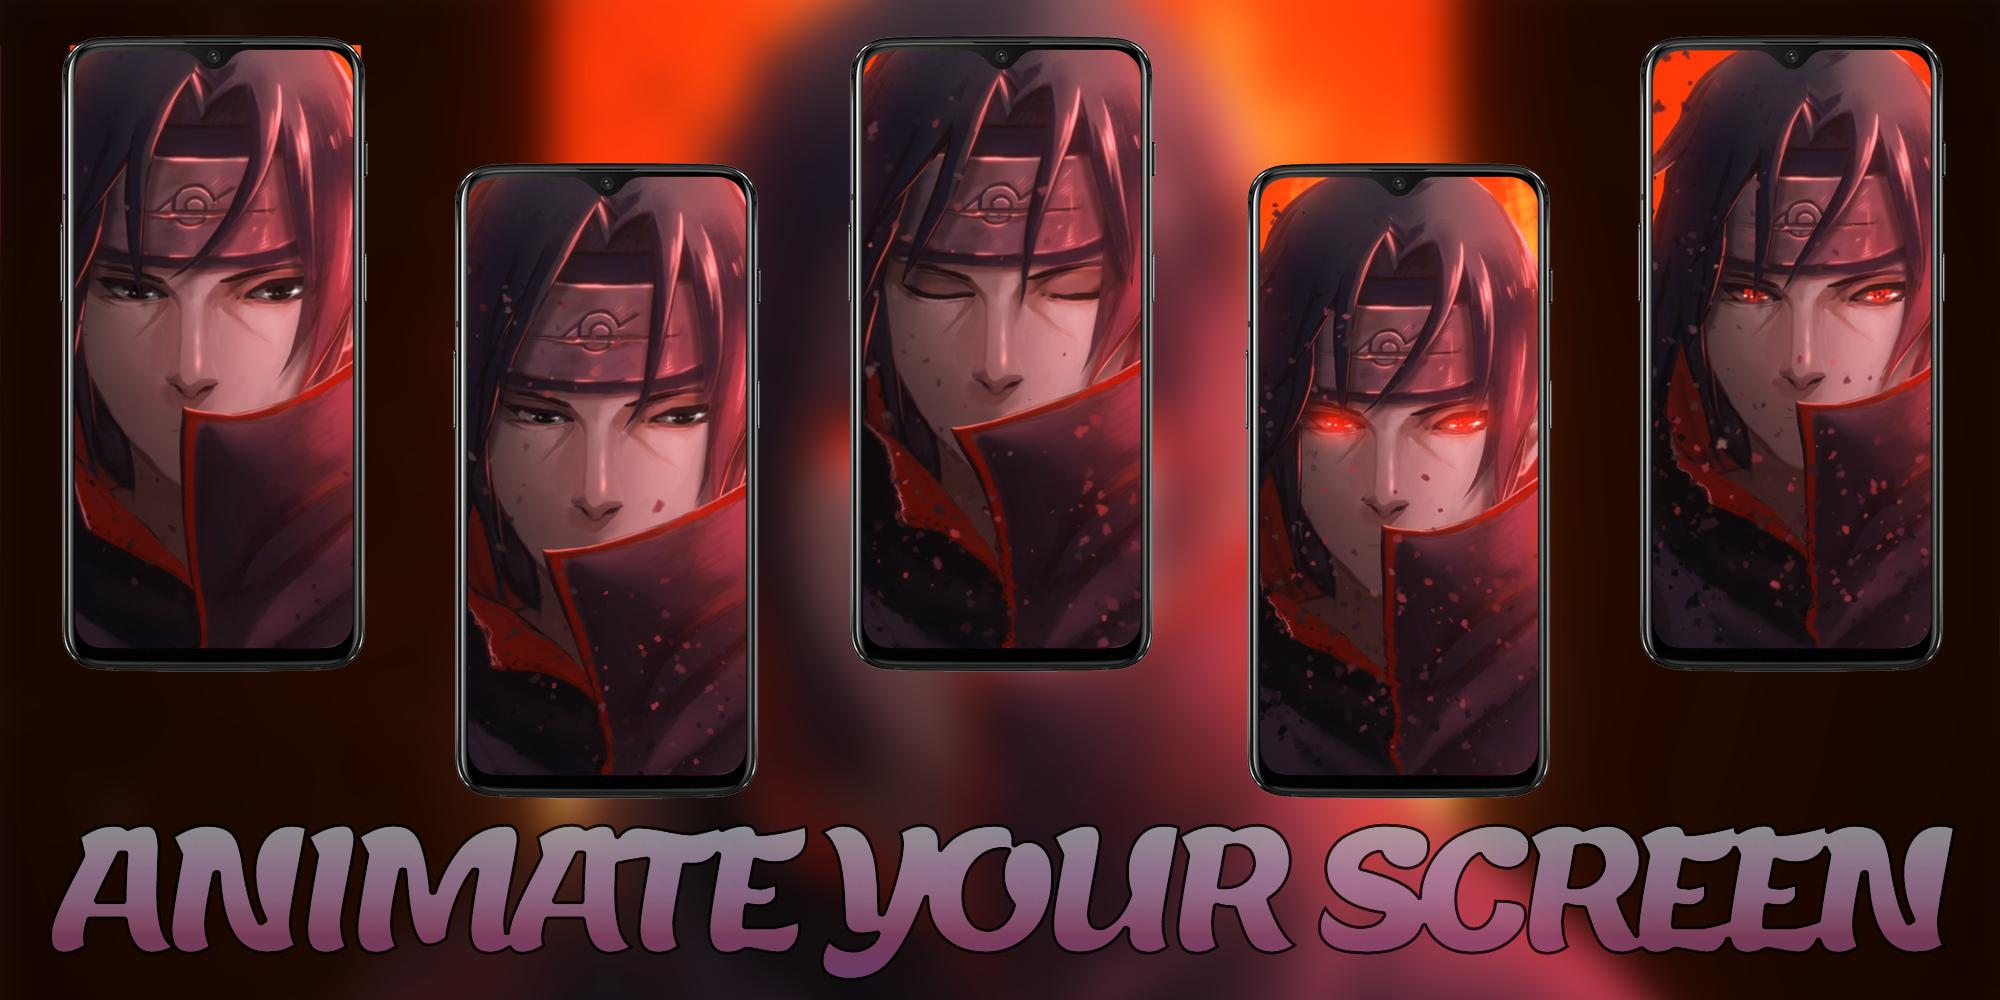 Itachi Uchiha Anime Live Wallpaper For Android Apk Download